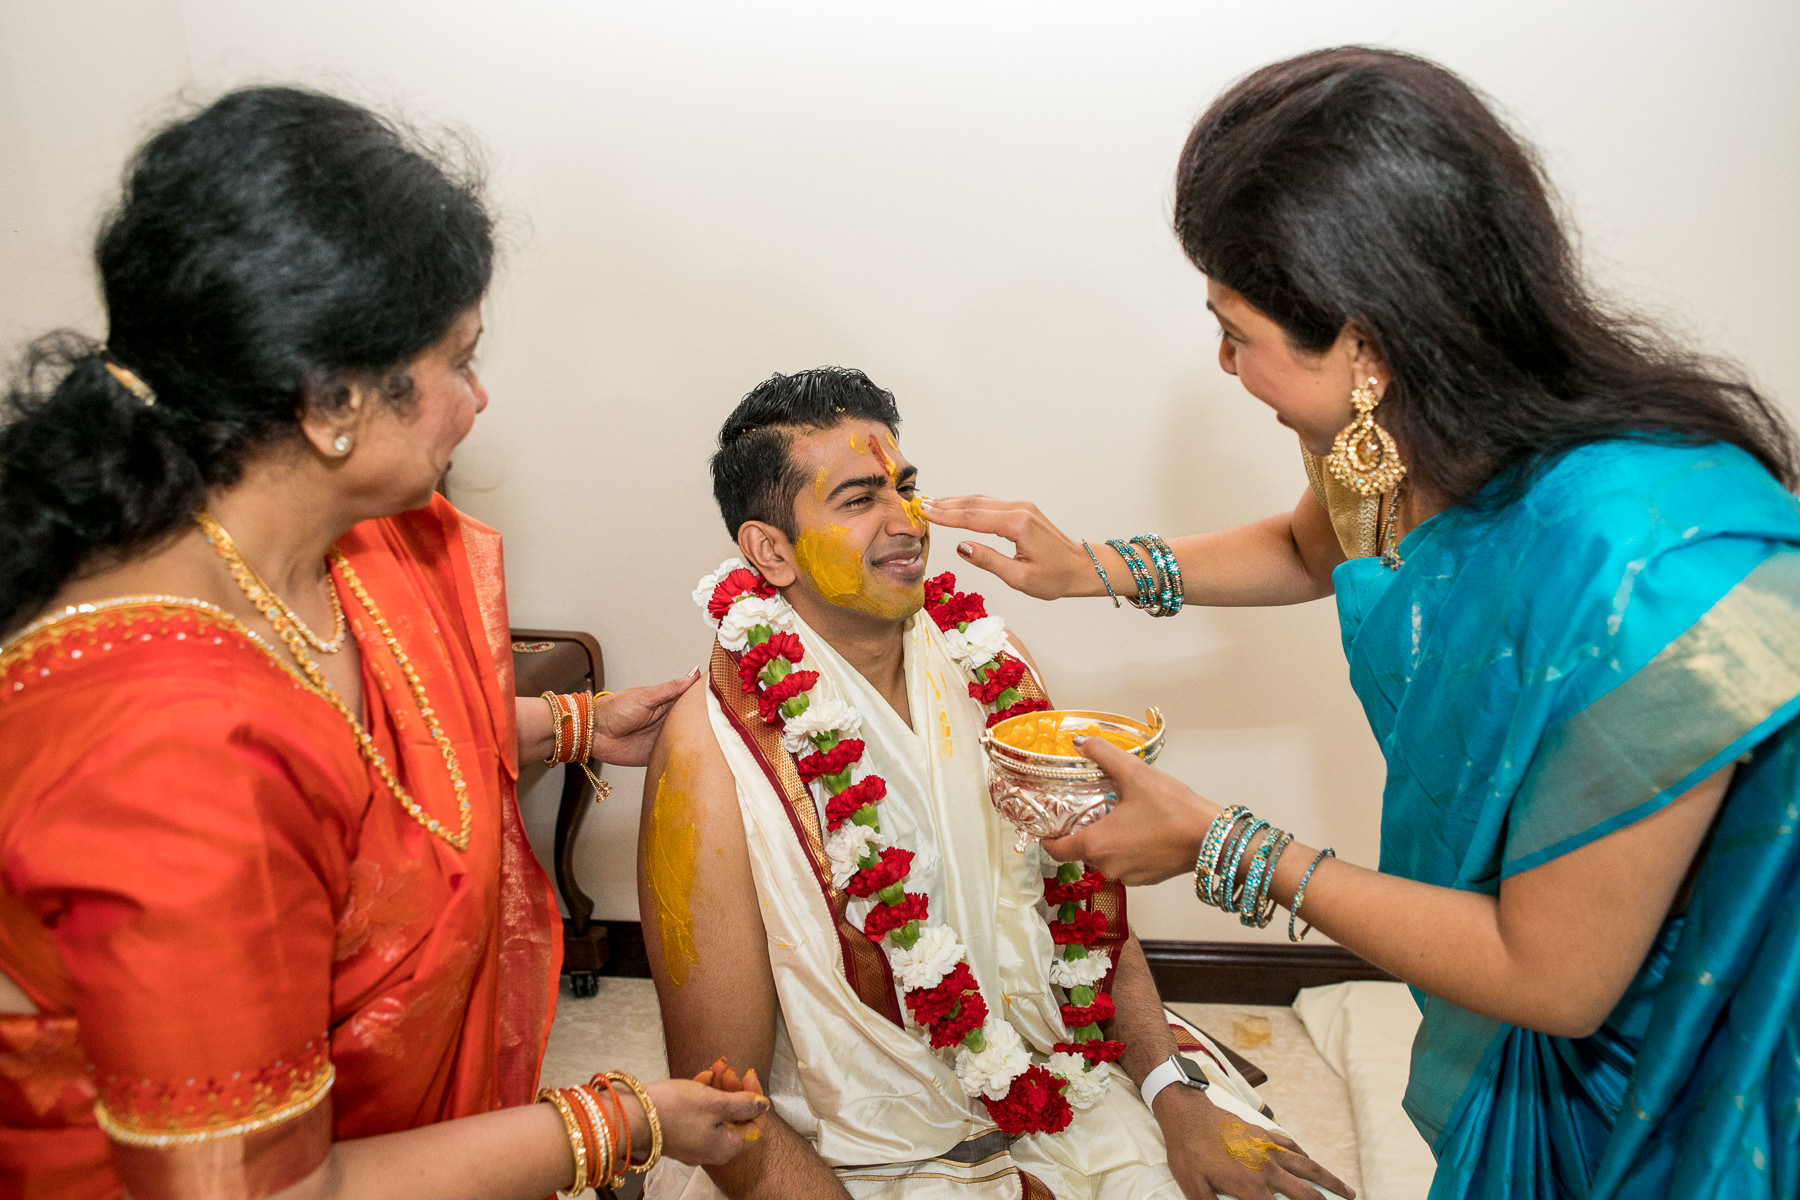 sister applies haldi to hindu groom's nose in whittier wedding photographer